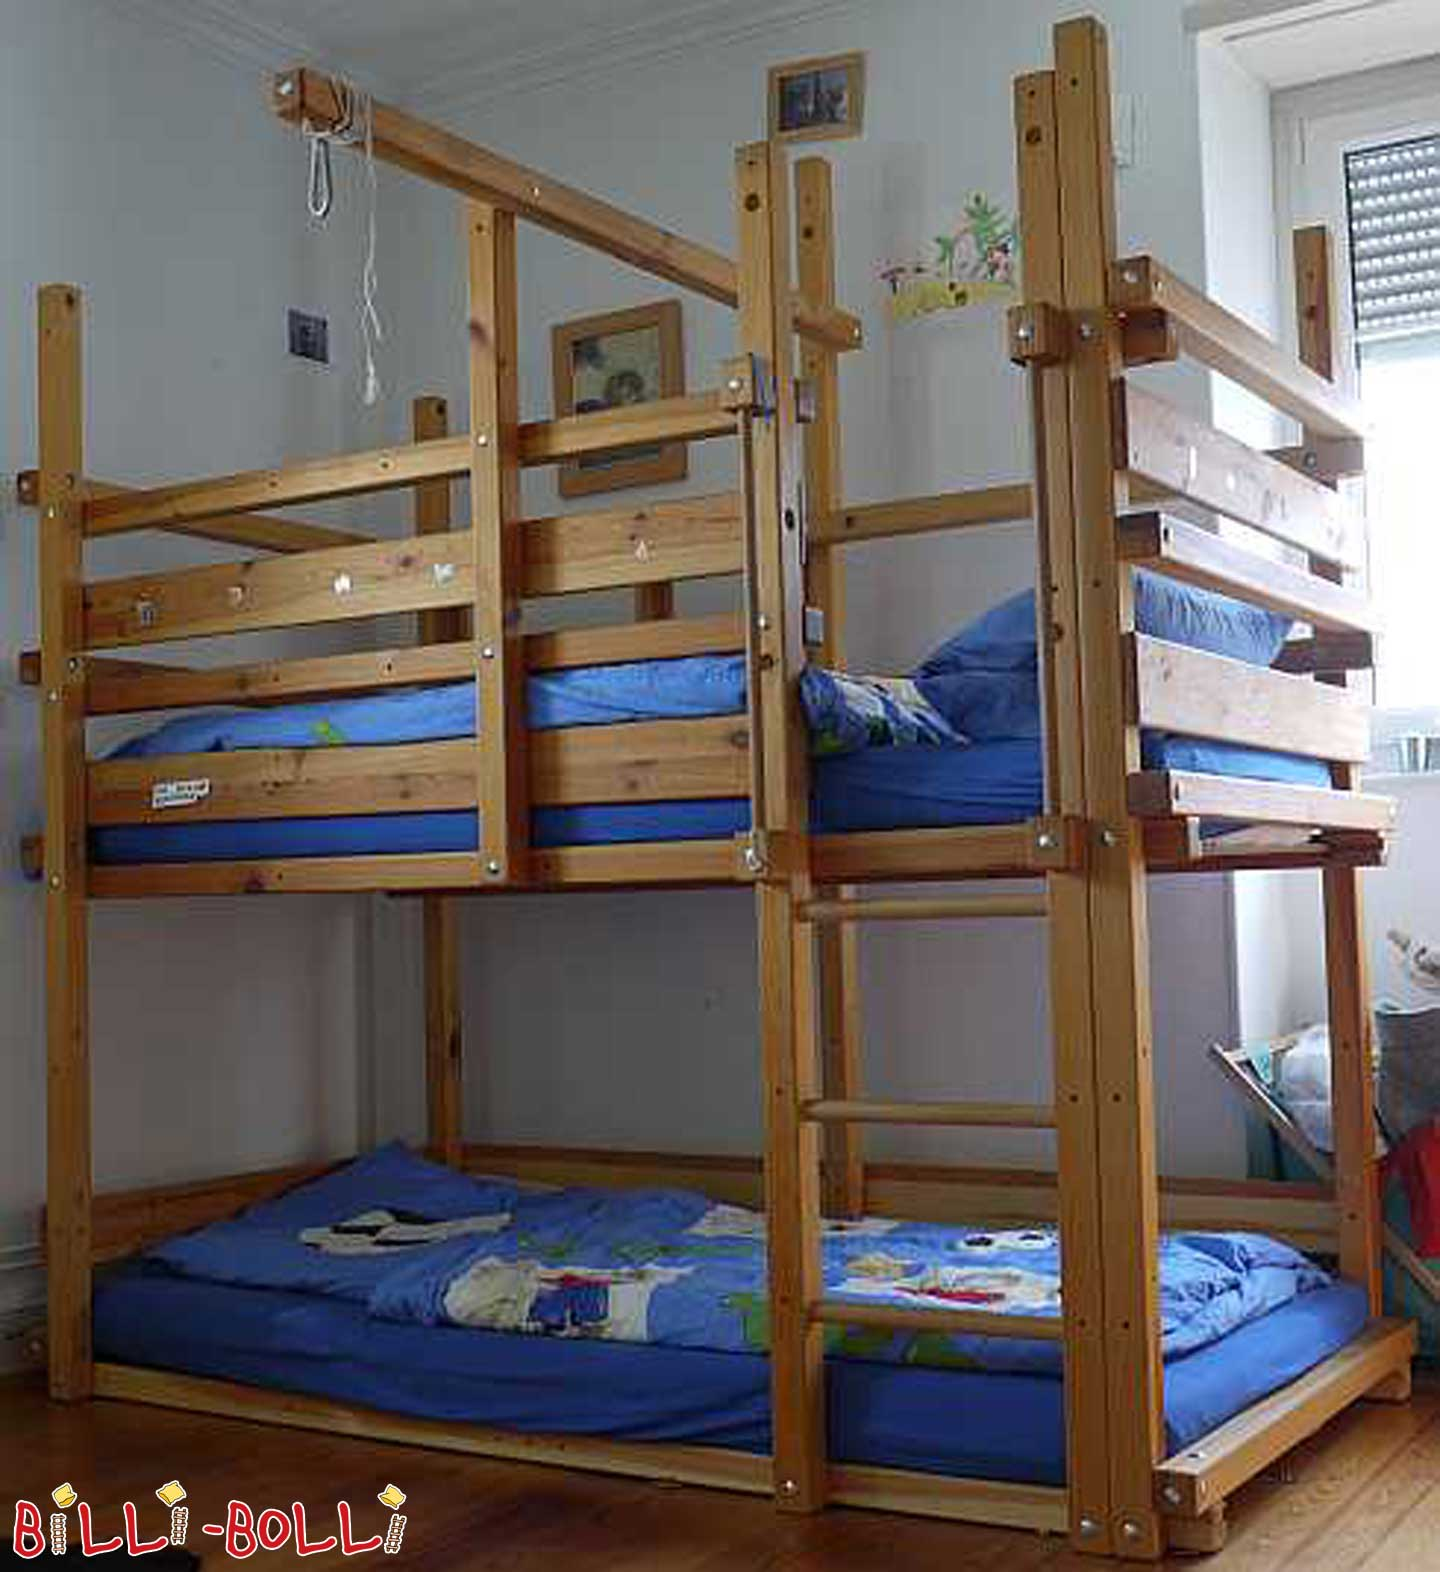 High bed (BJ 2006) with conversion kit to bunk bed (BJ 2008) (second hand loft bed)